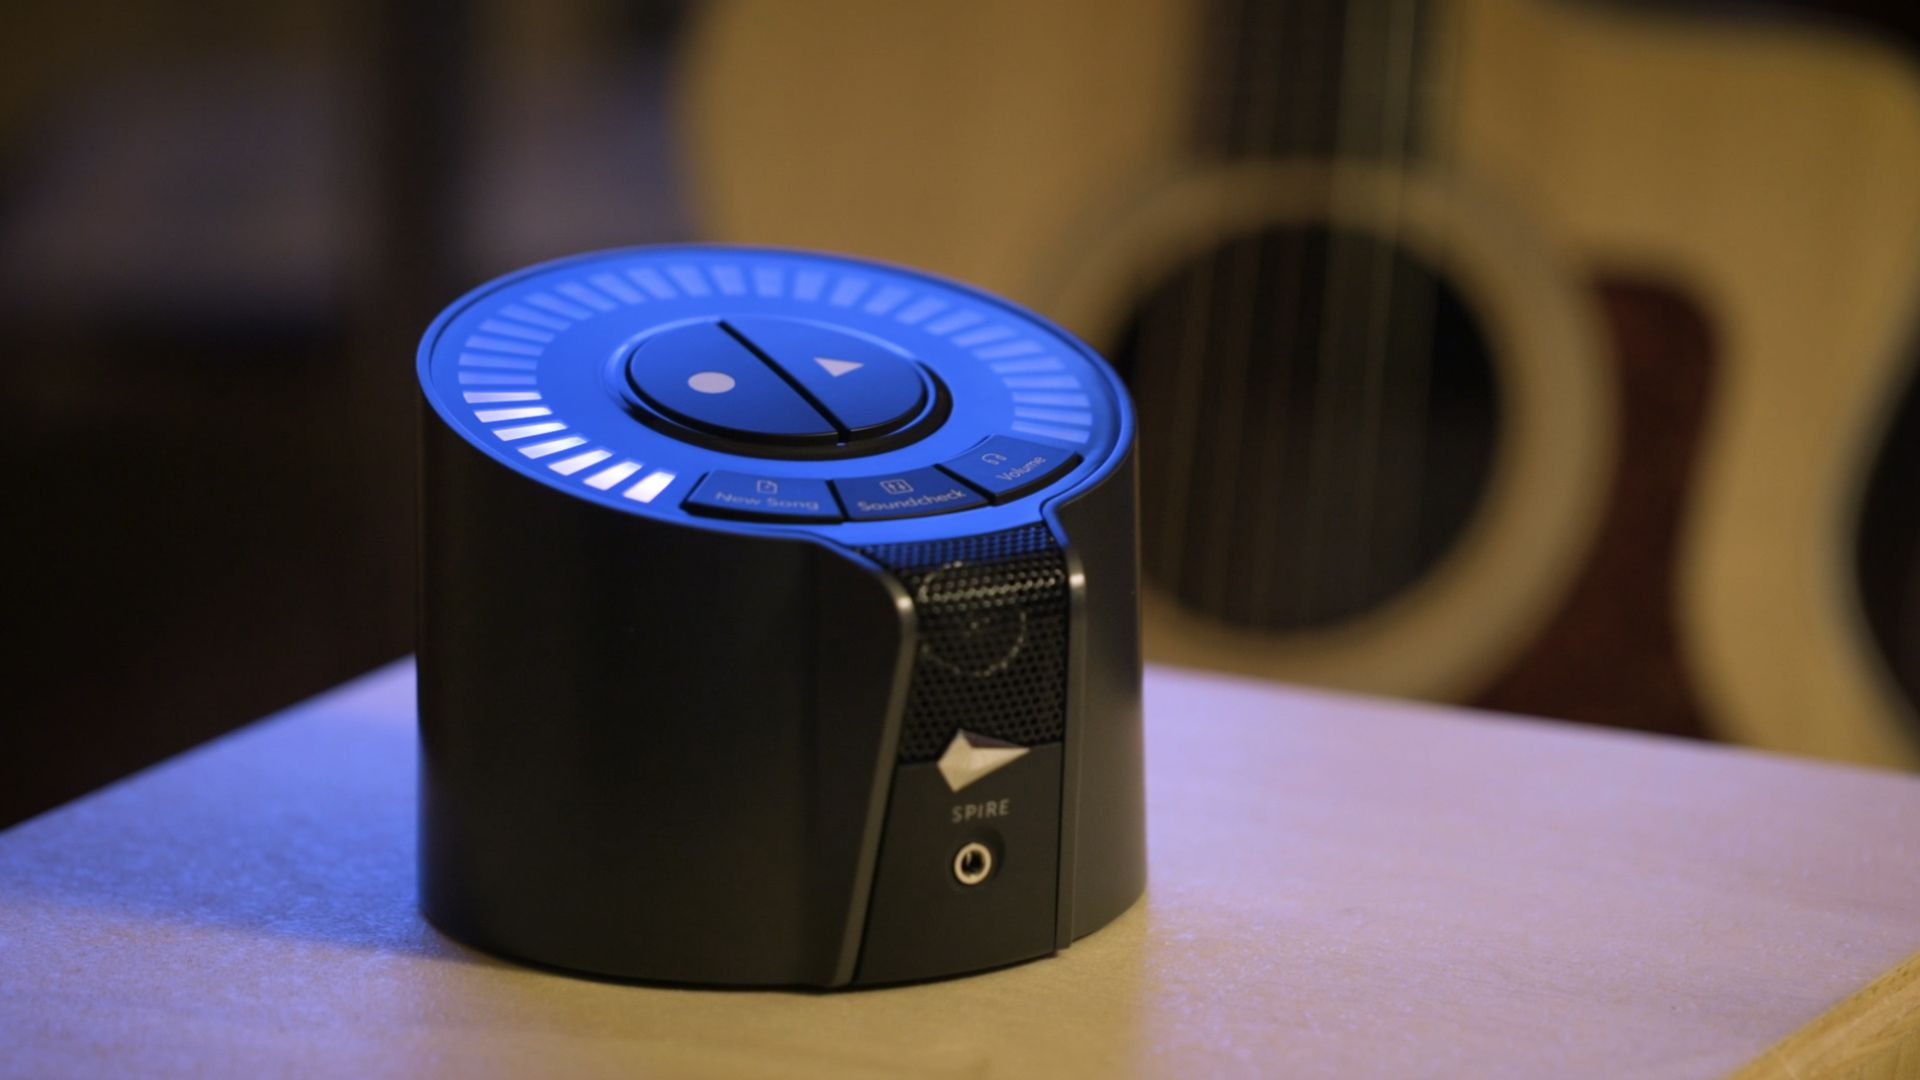 Spire Studio is a recording studio that fits in your hand - The Verge